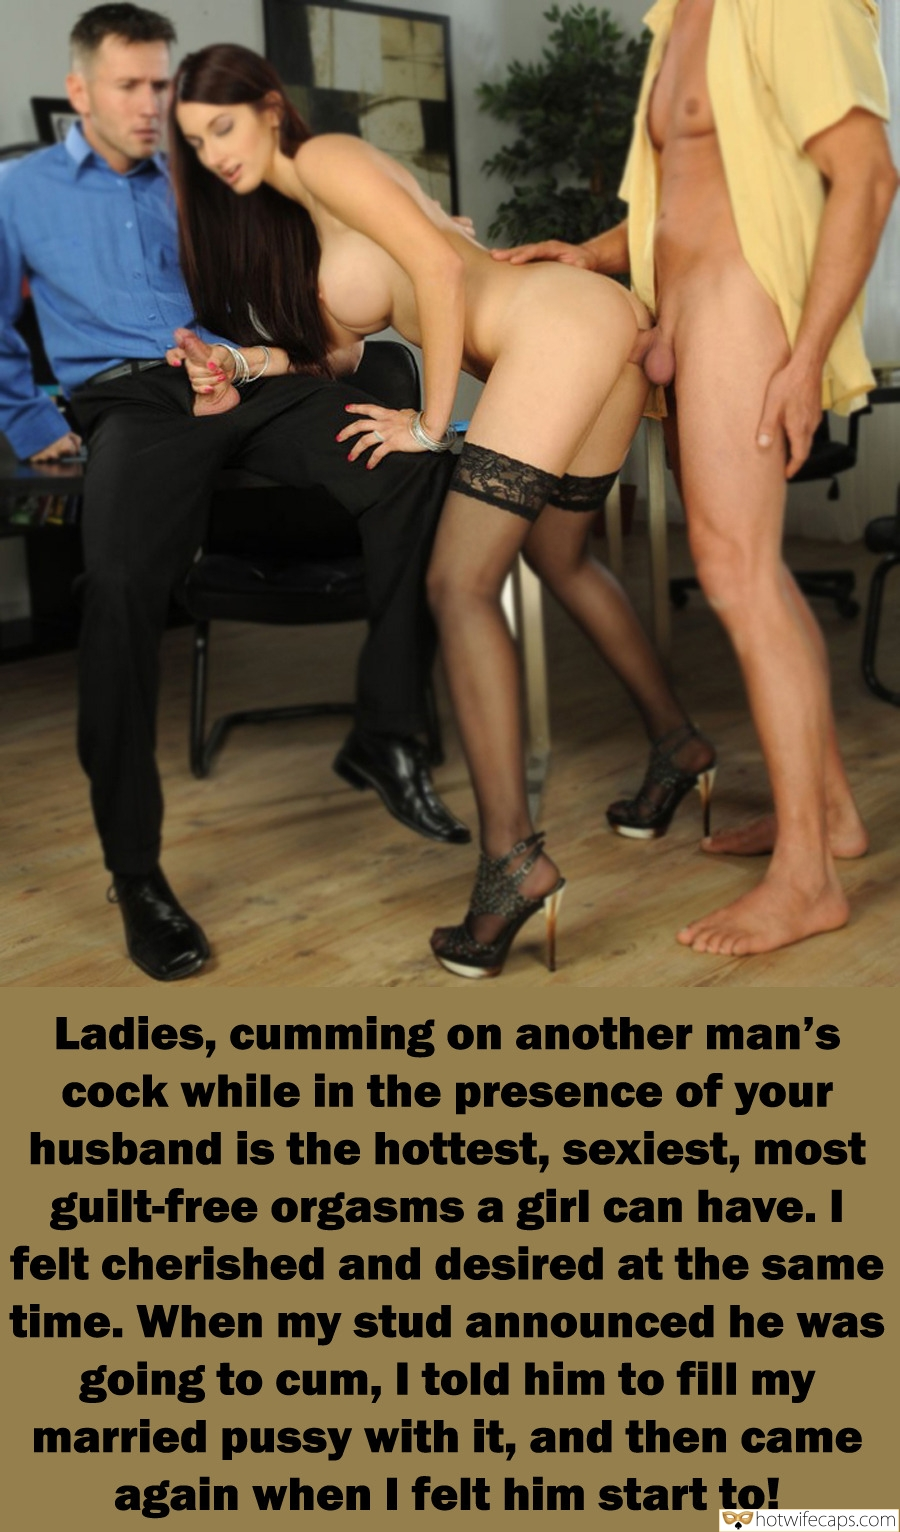 Wife Sharing Threesome Cum Dump  hotwife caption: 414 Ladies, cumming on another man's cock while in the presence of your husband is the hottest, sexiest, most guilt-free orgasms a girl can have. I felt cherished and desired at the same time. When my stud announced he was...